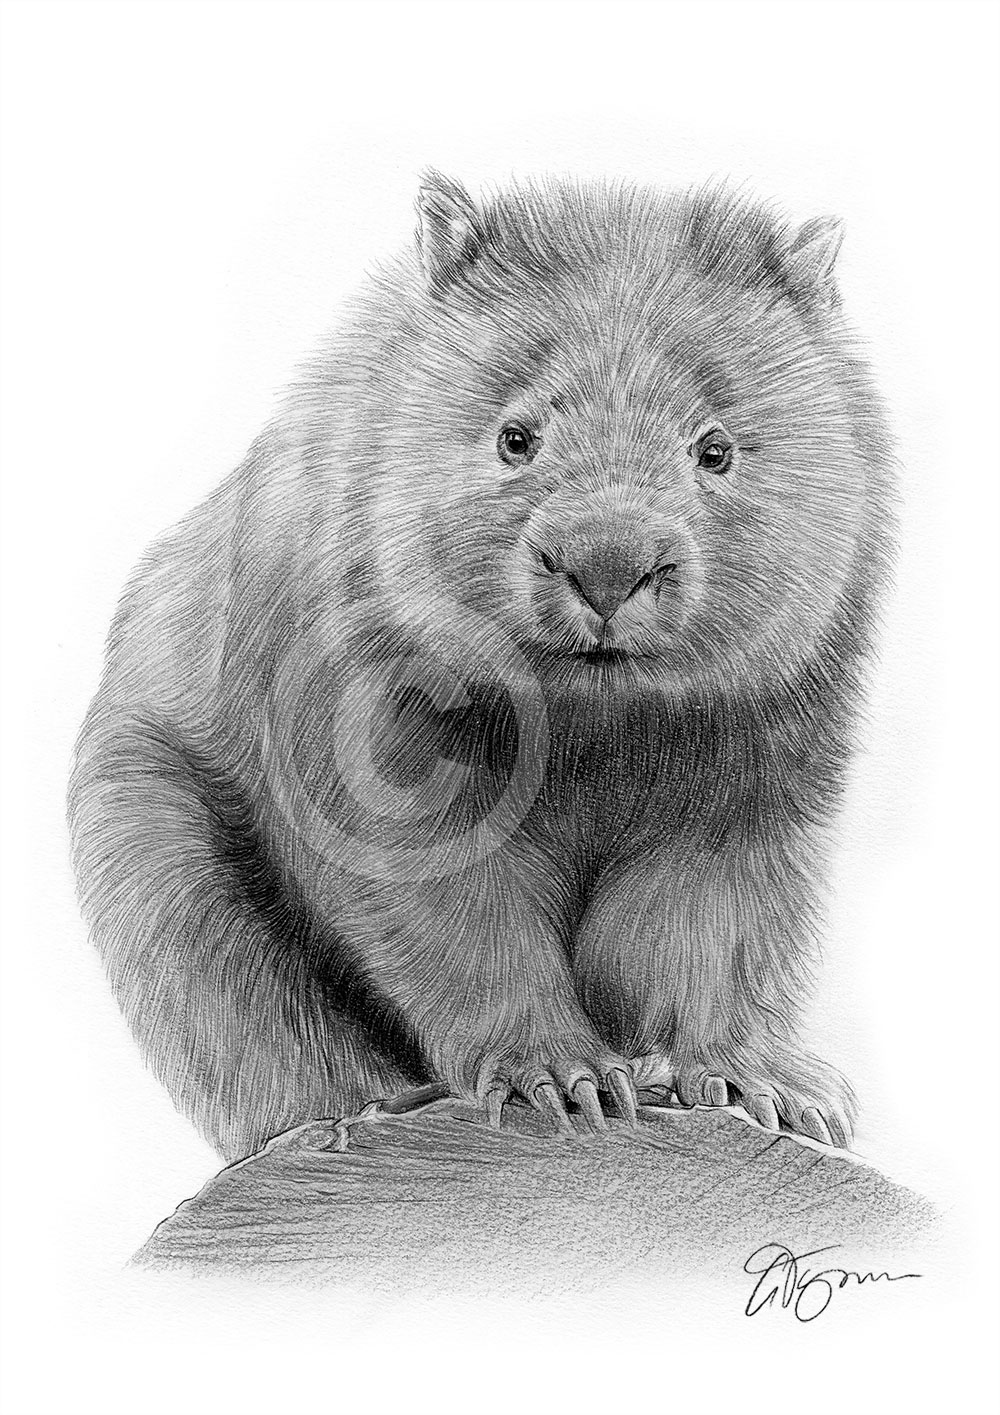 Pencil drawing of a wombat by artist Gary Tymon